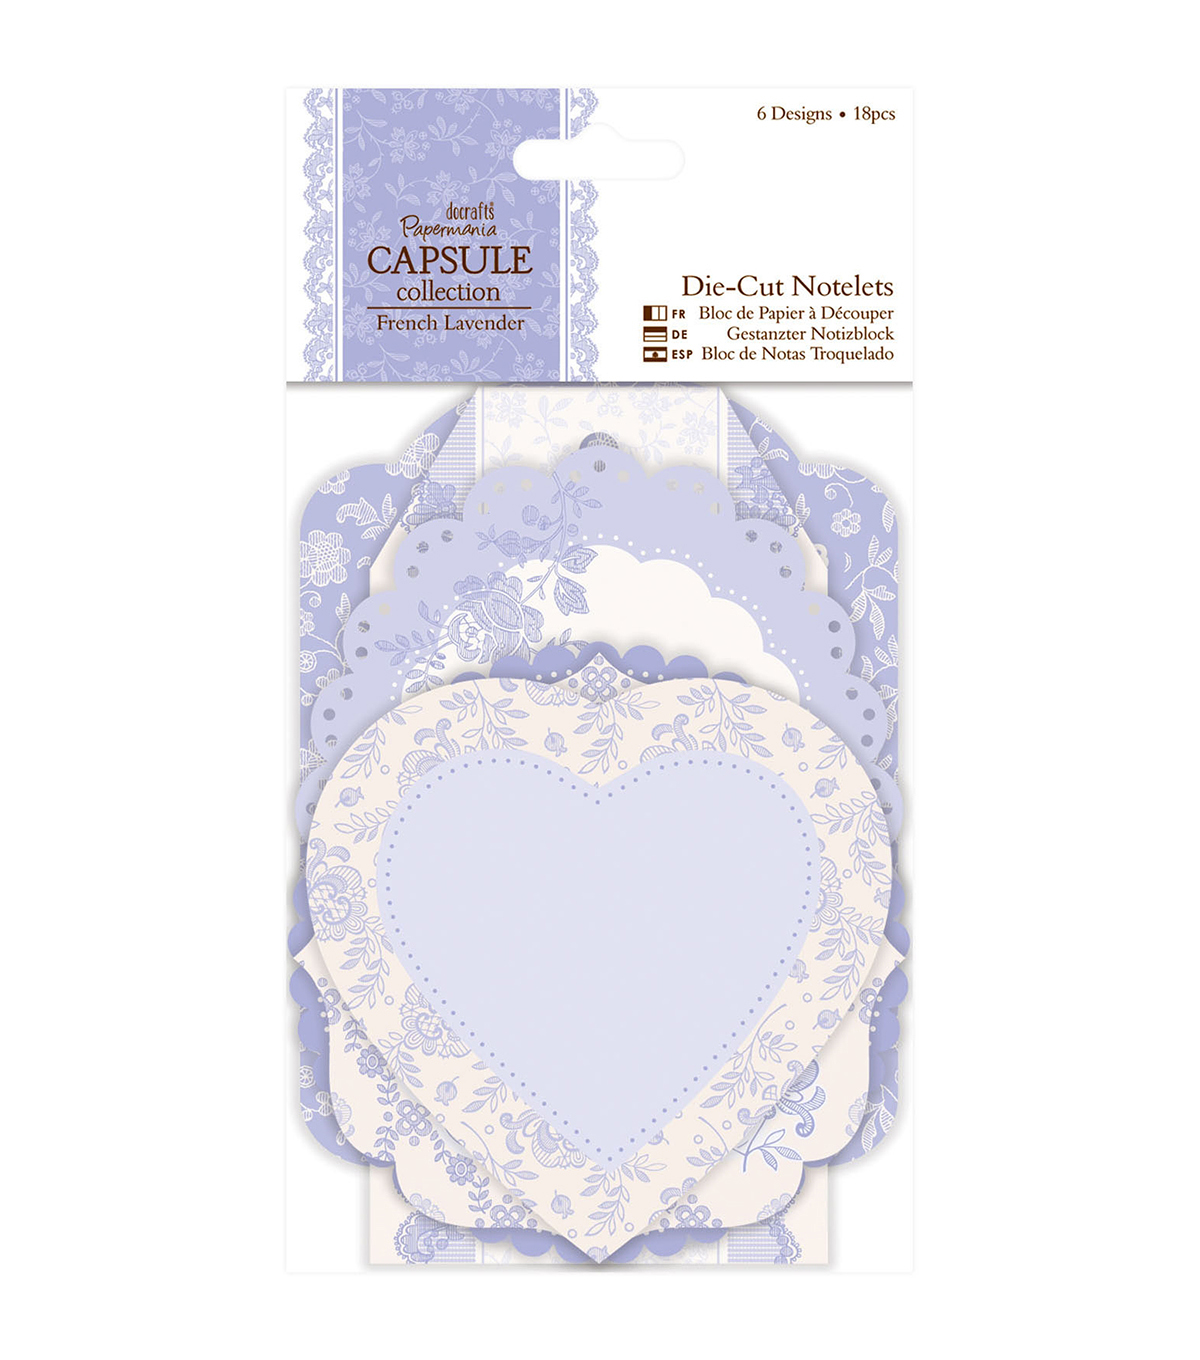 Papermania Capsule French Lavender Die-Cut Notelets